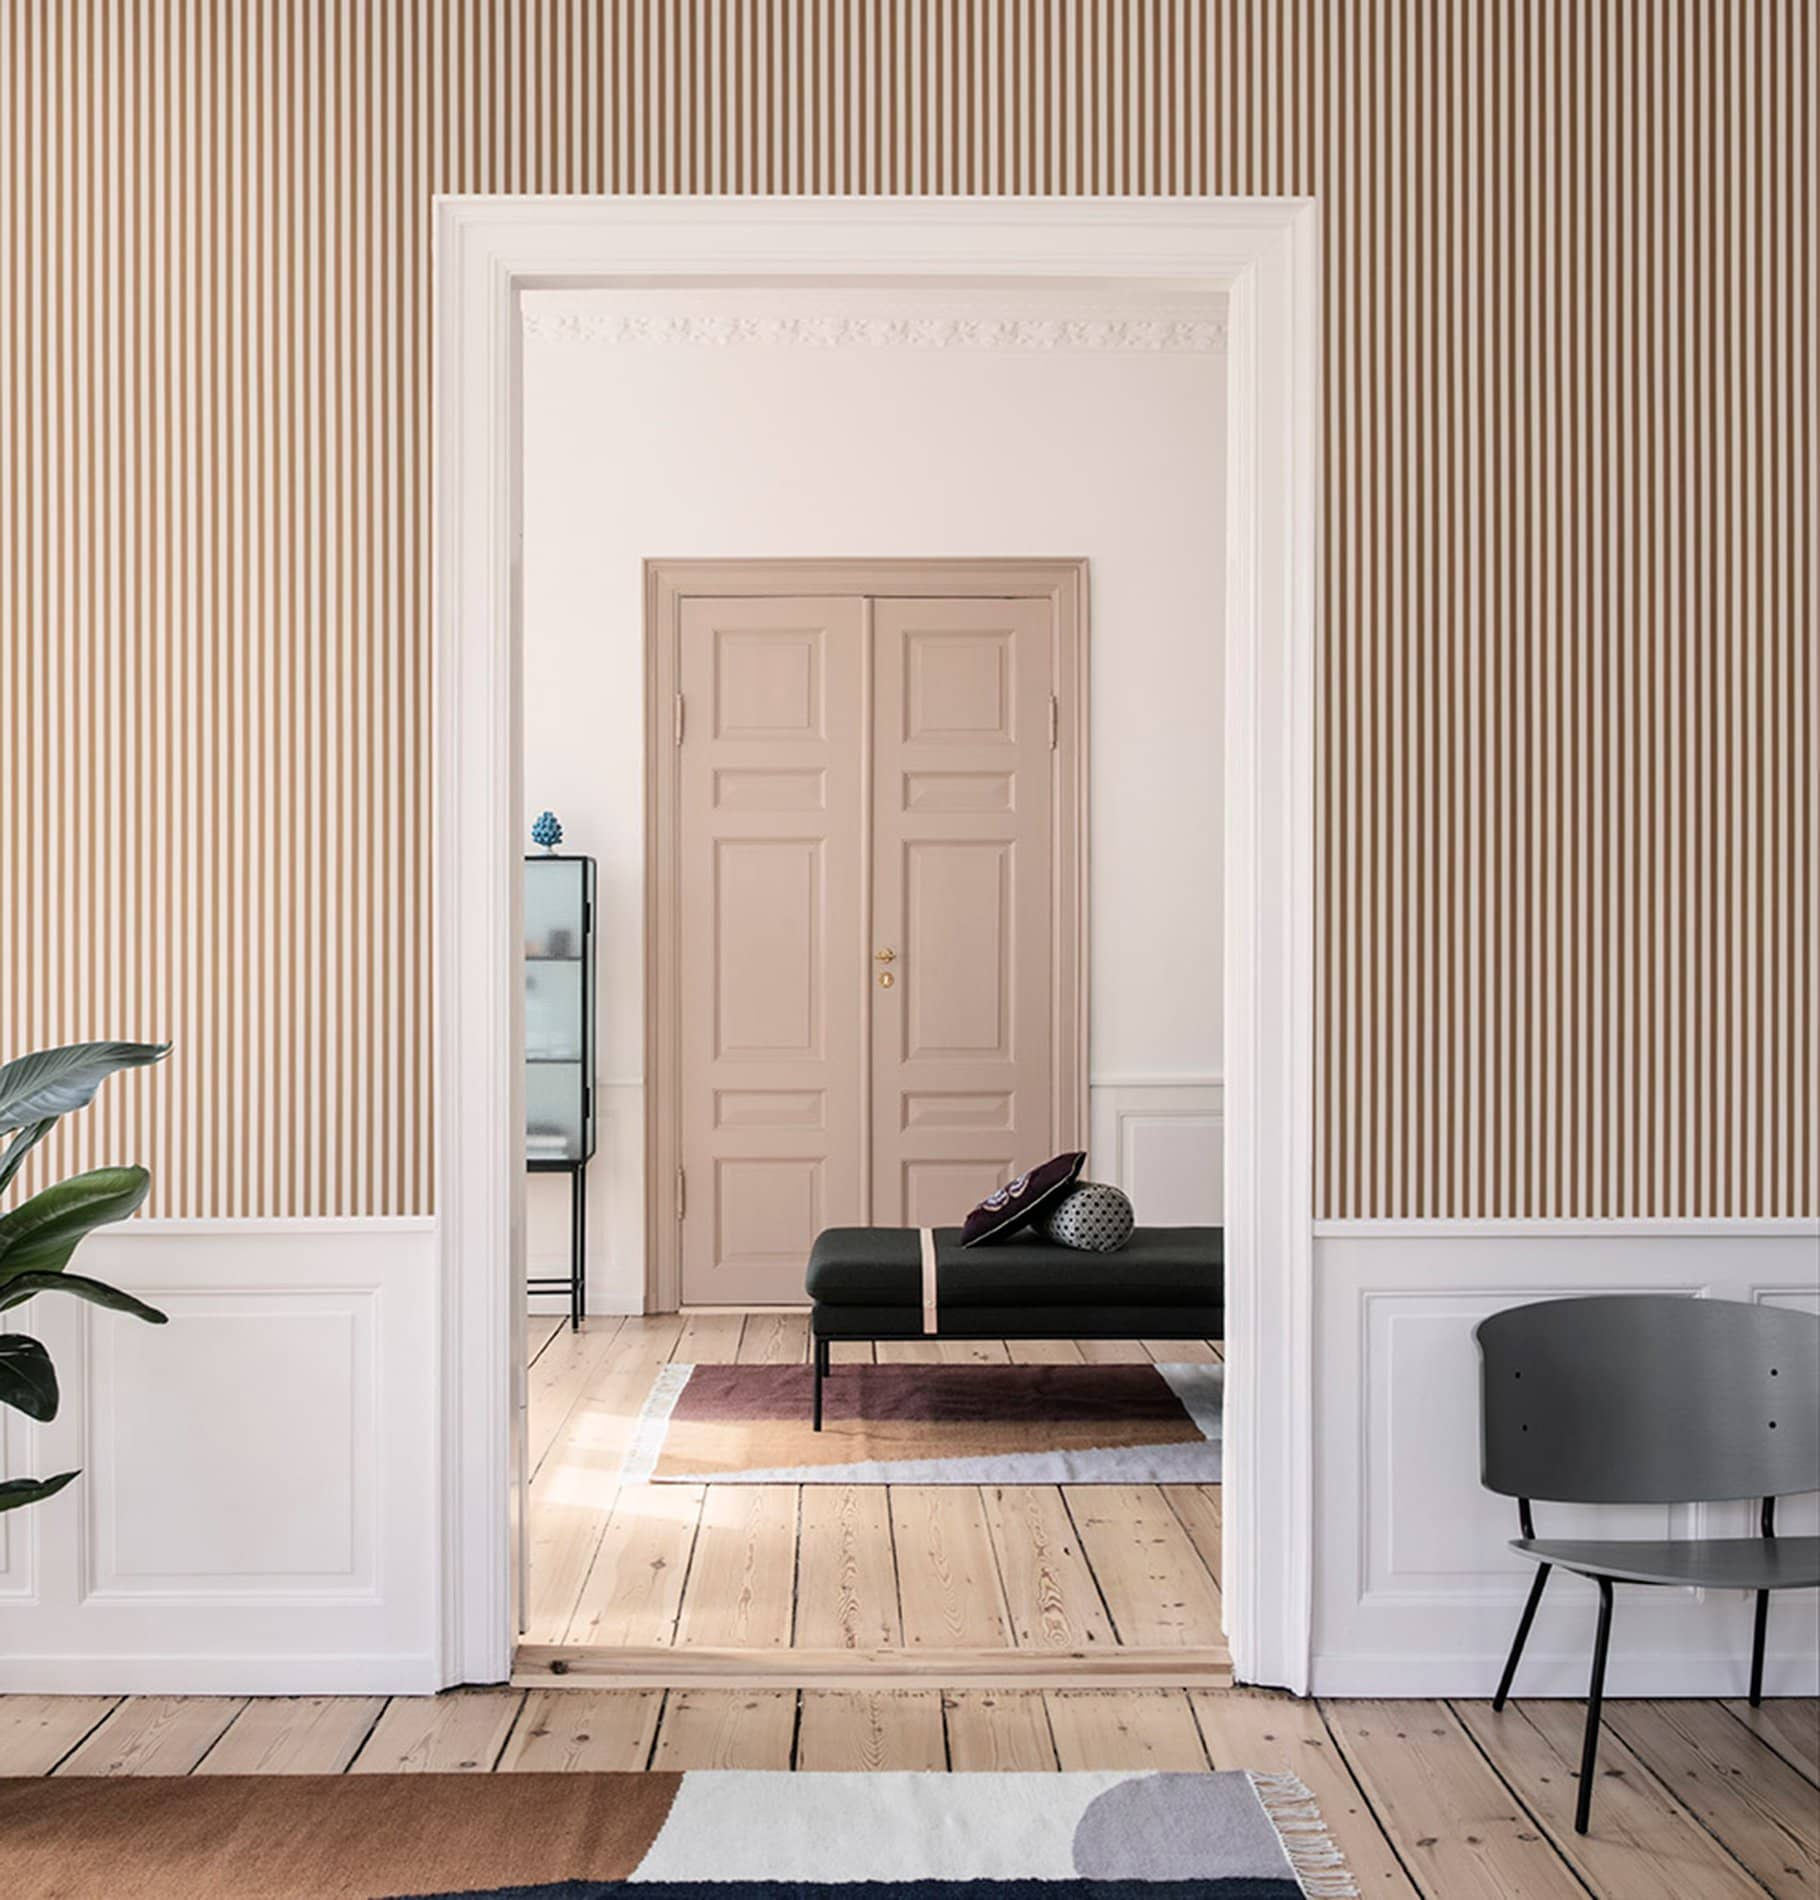 Ferm Living Thin Lines Wallpaper - Mustard/Off White